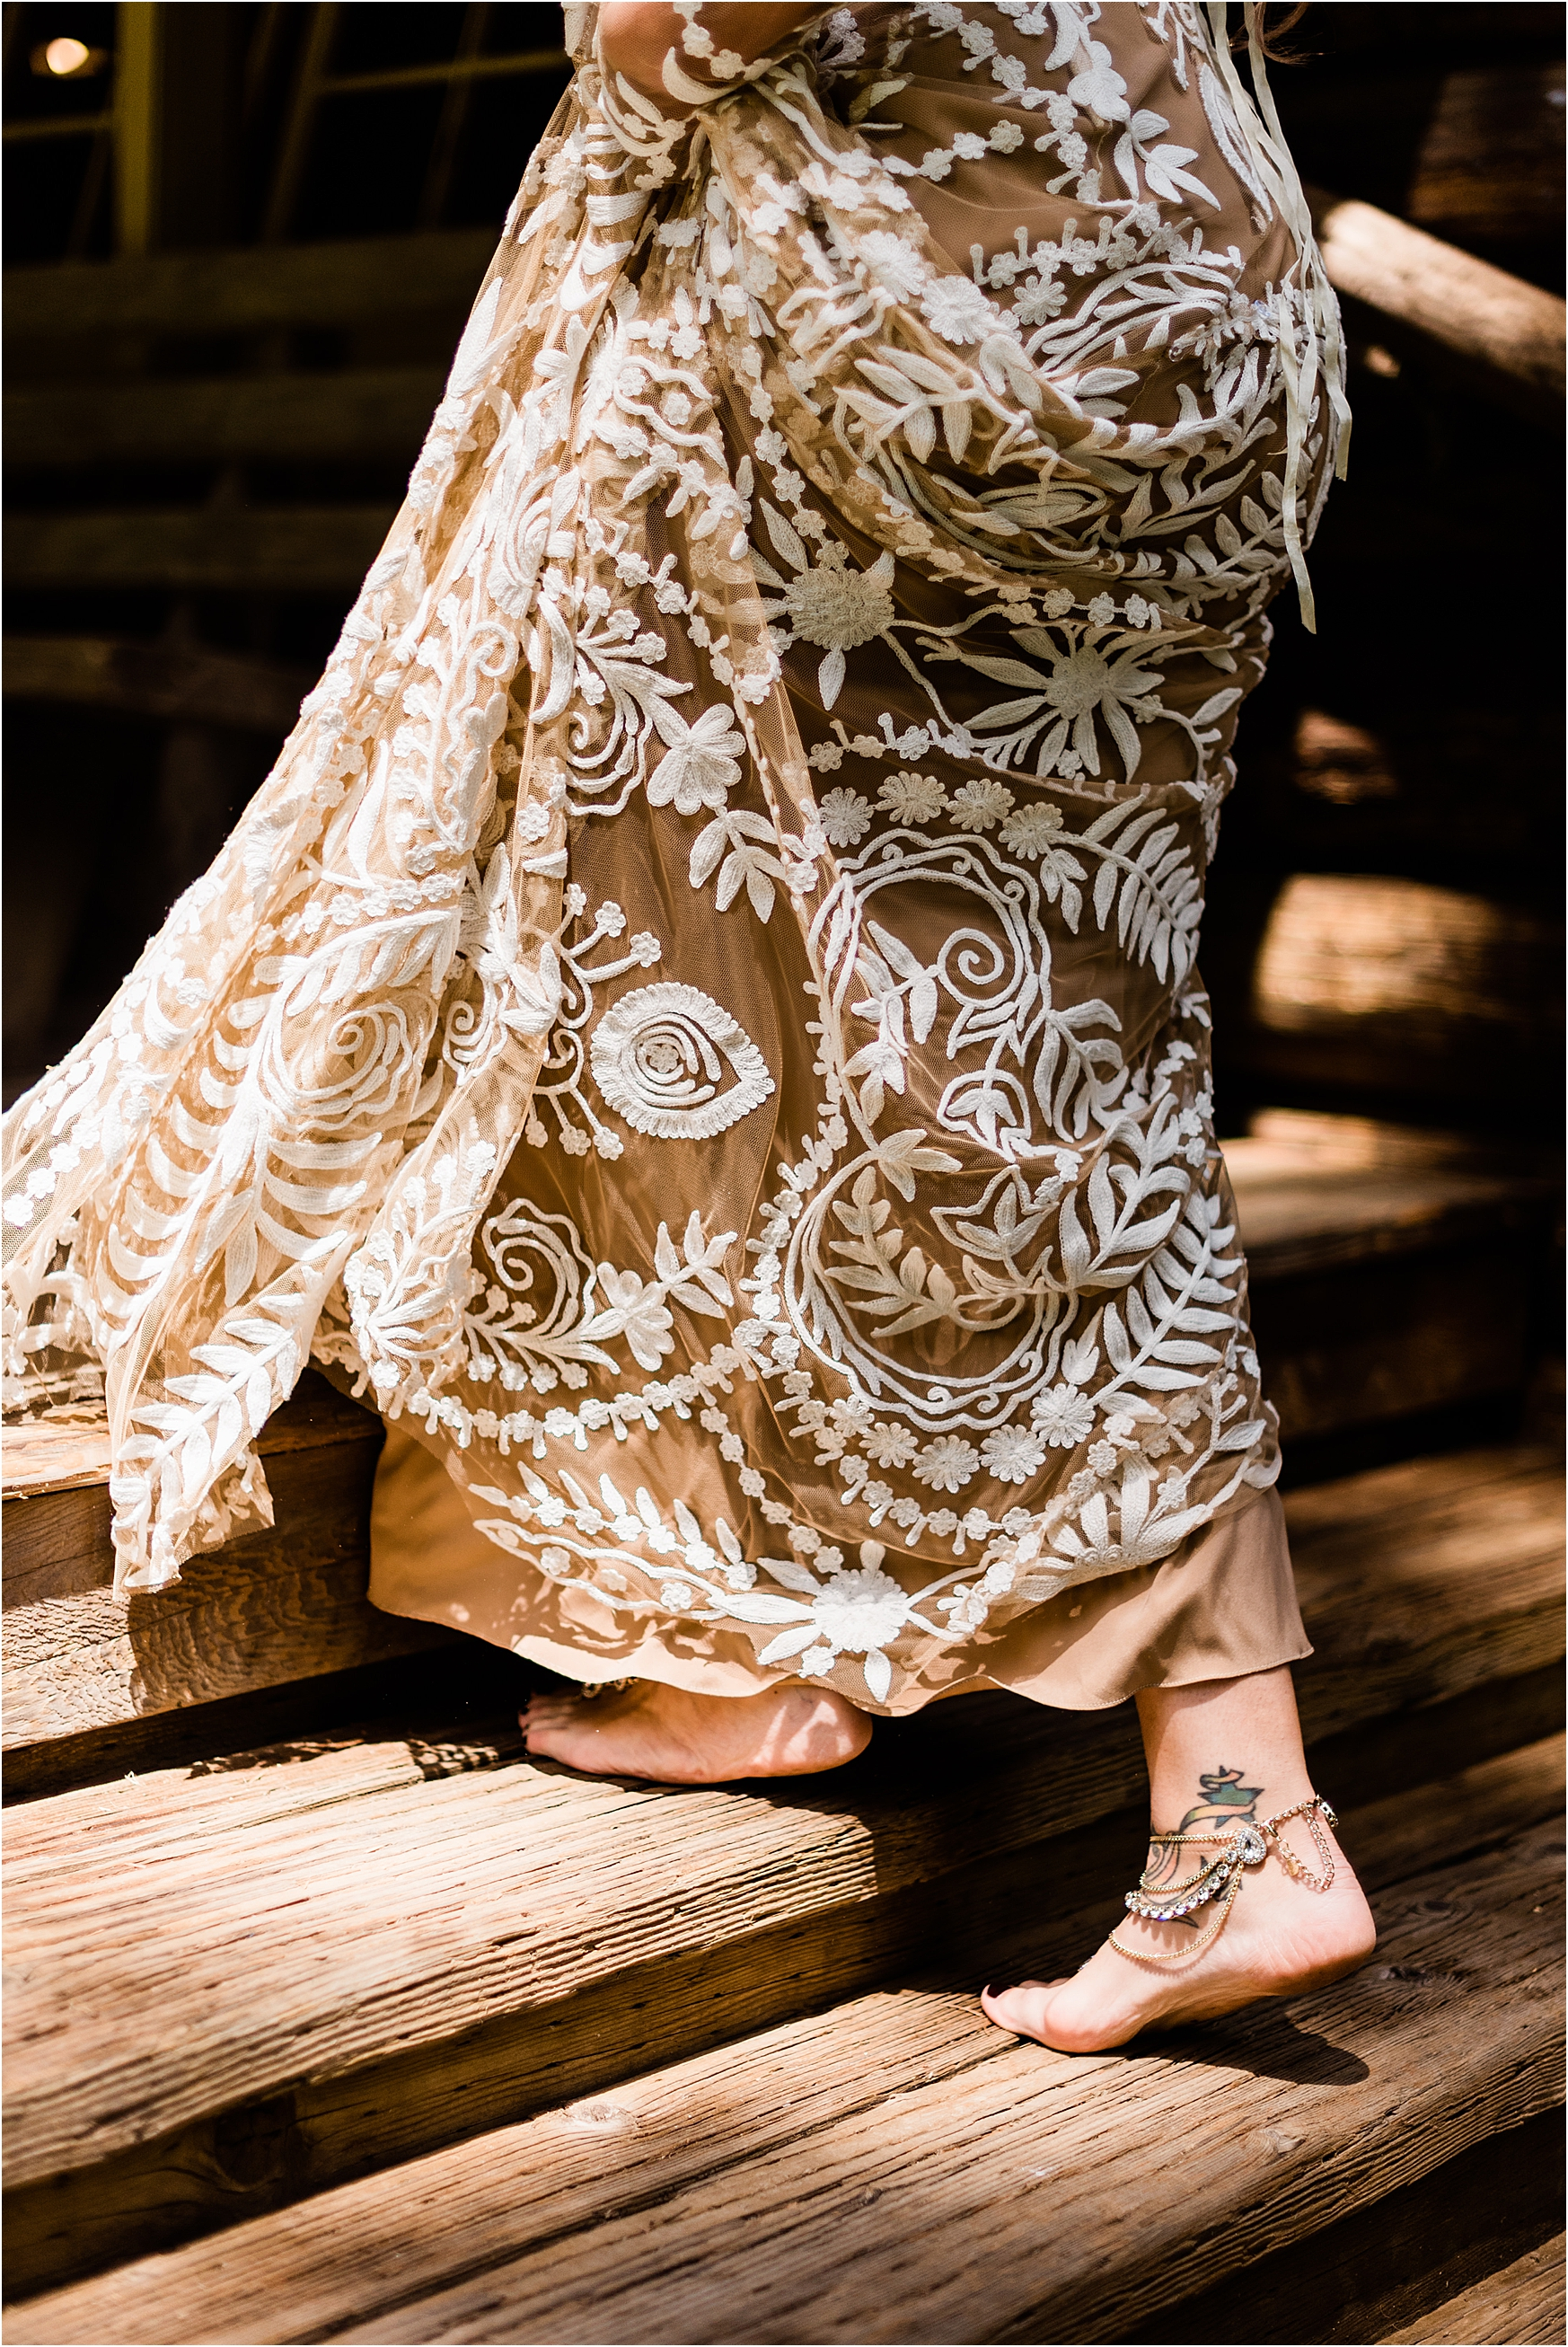 Bridal Ankle jewelry, barefoot bride at Camp Lane Destination Wedding, Oregon. Image by Forthright Photo.